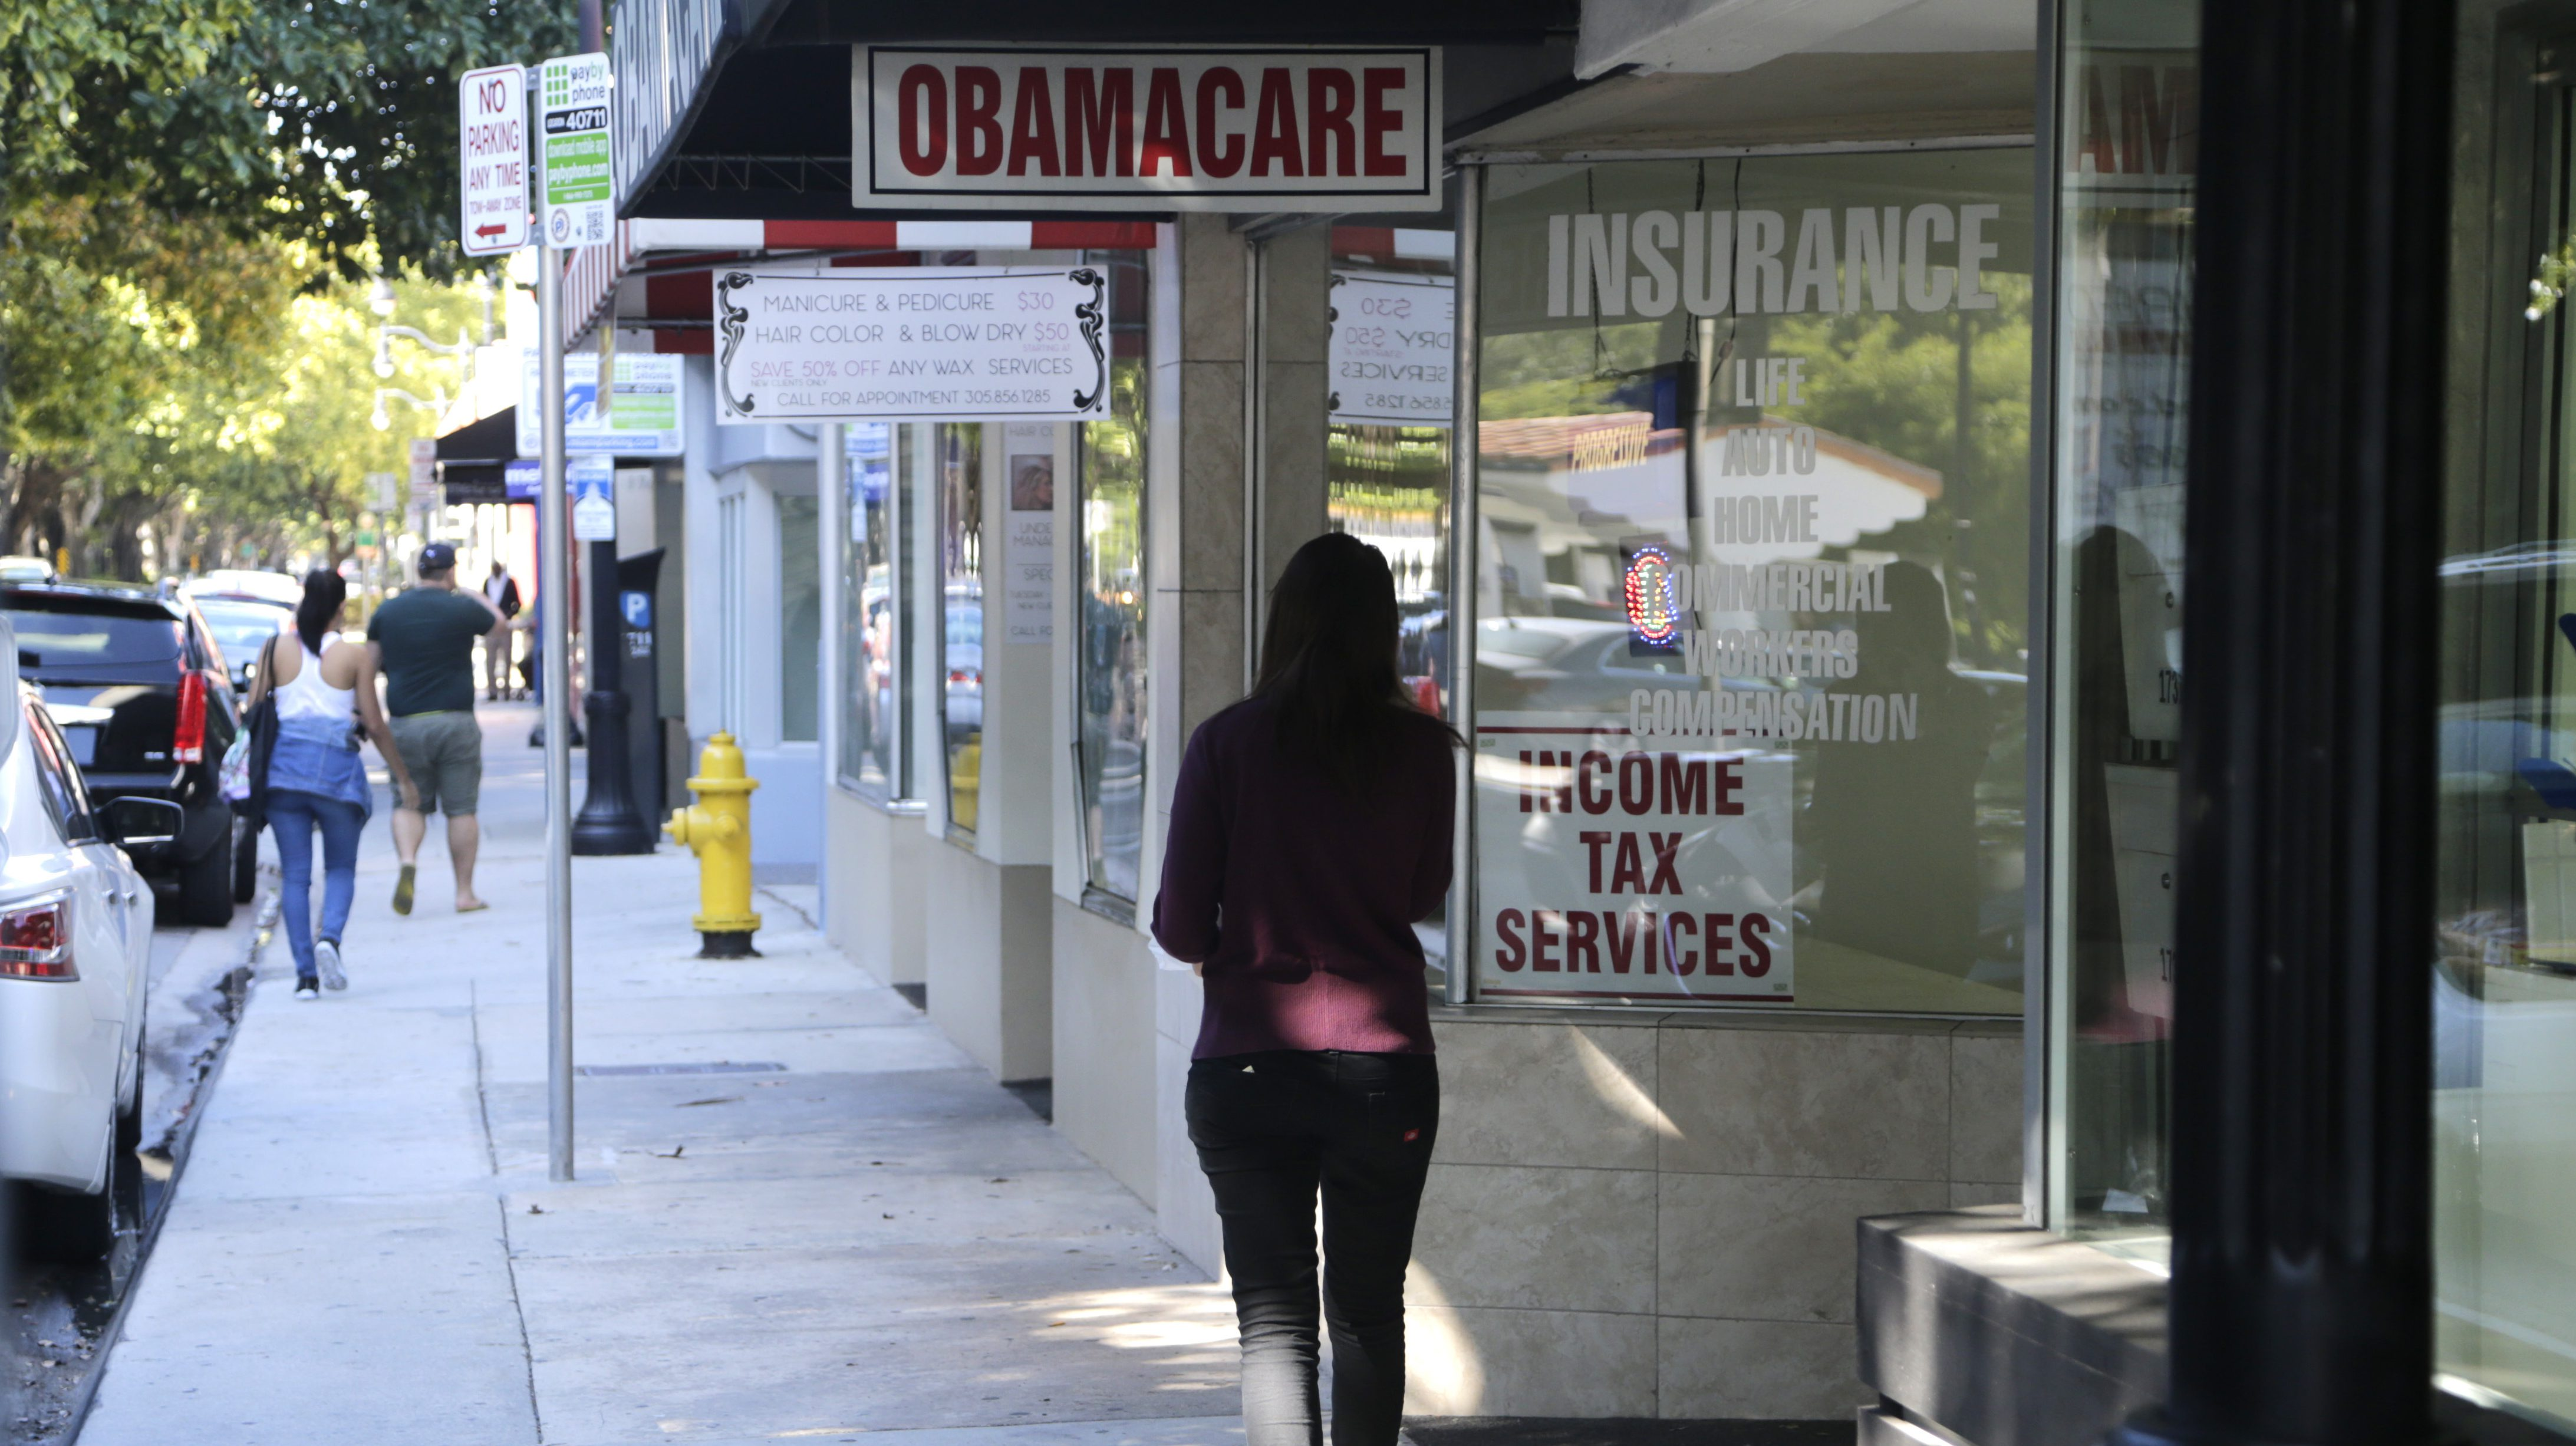 The Trump administration will keep enrolment guidance for Obamacare limited.